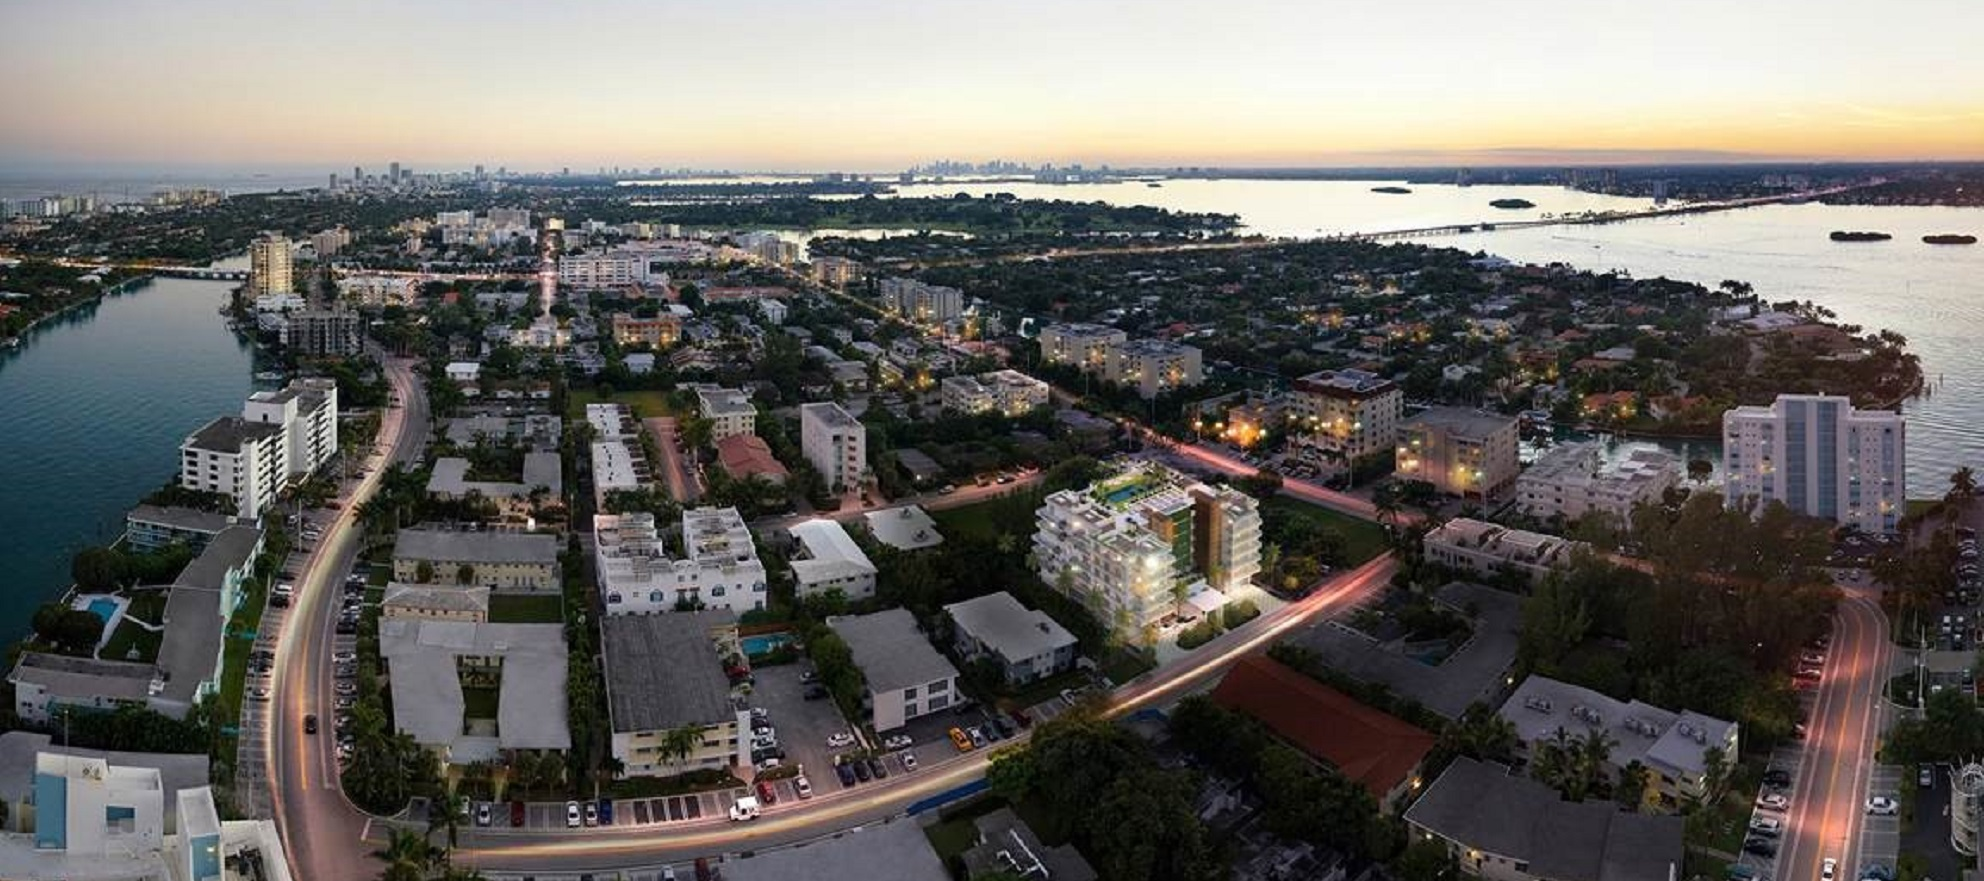 Bay Harbor Island celebrates 70 years as Miami's best kept secret